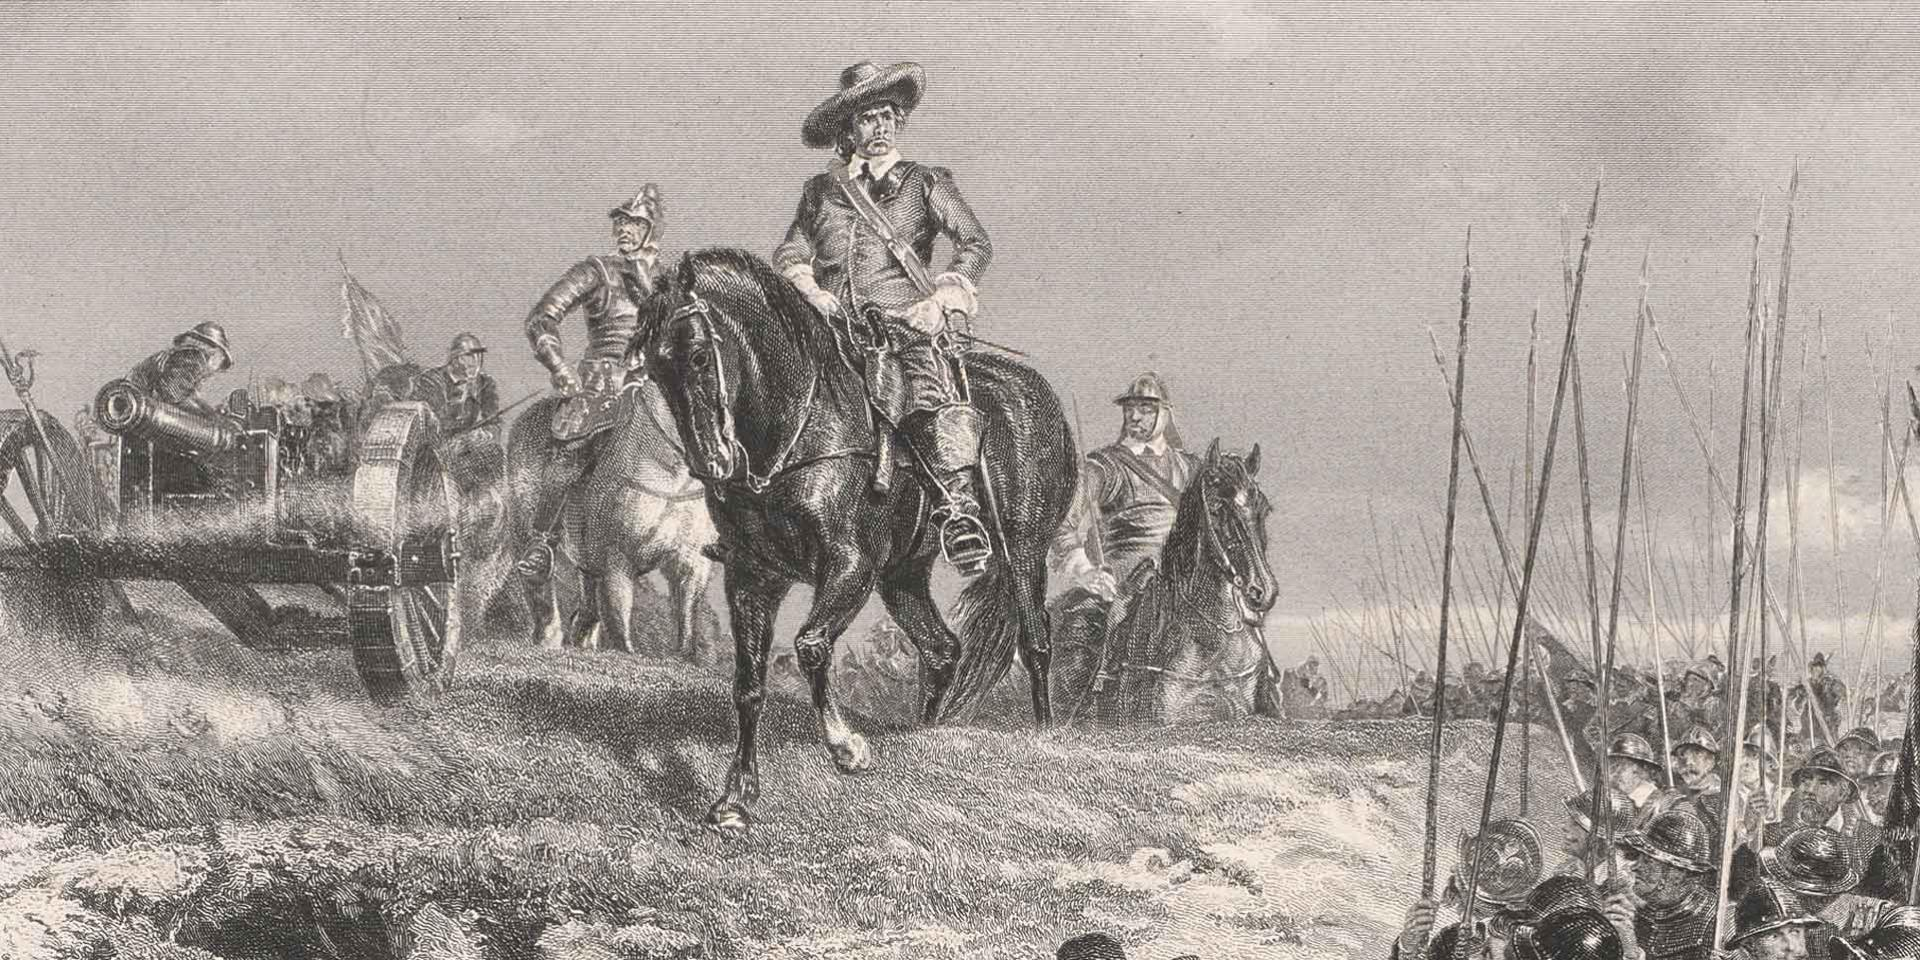 General Oliver Cromwell at Marston Moor, 1644